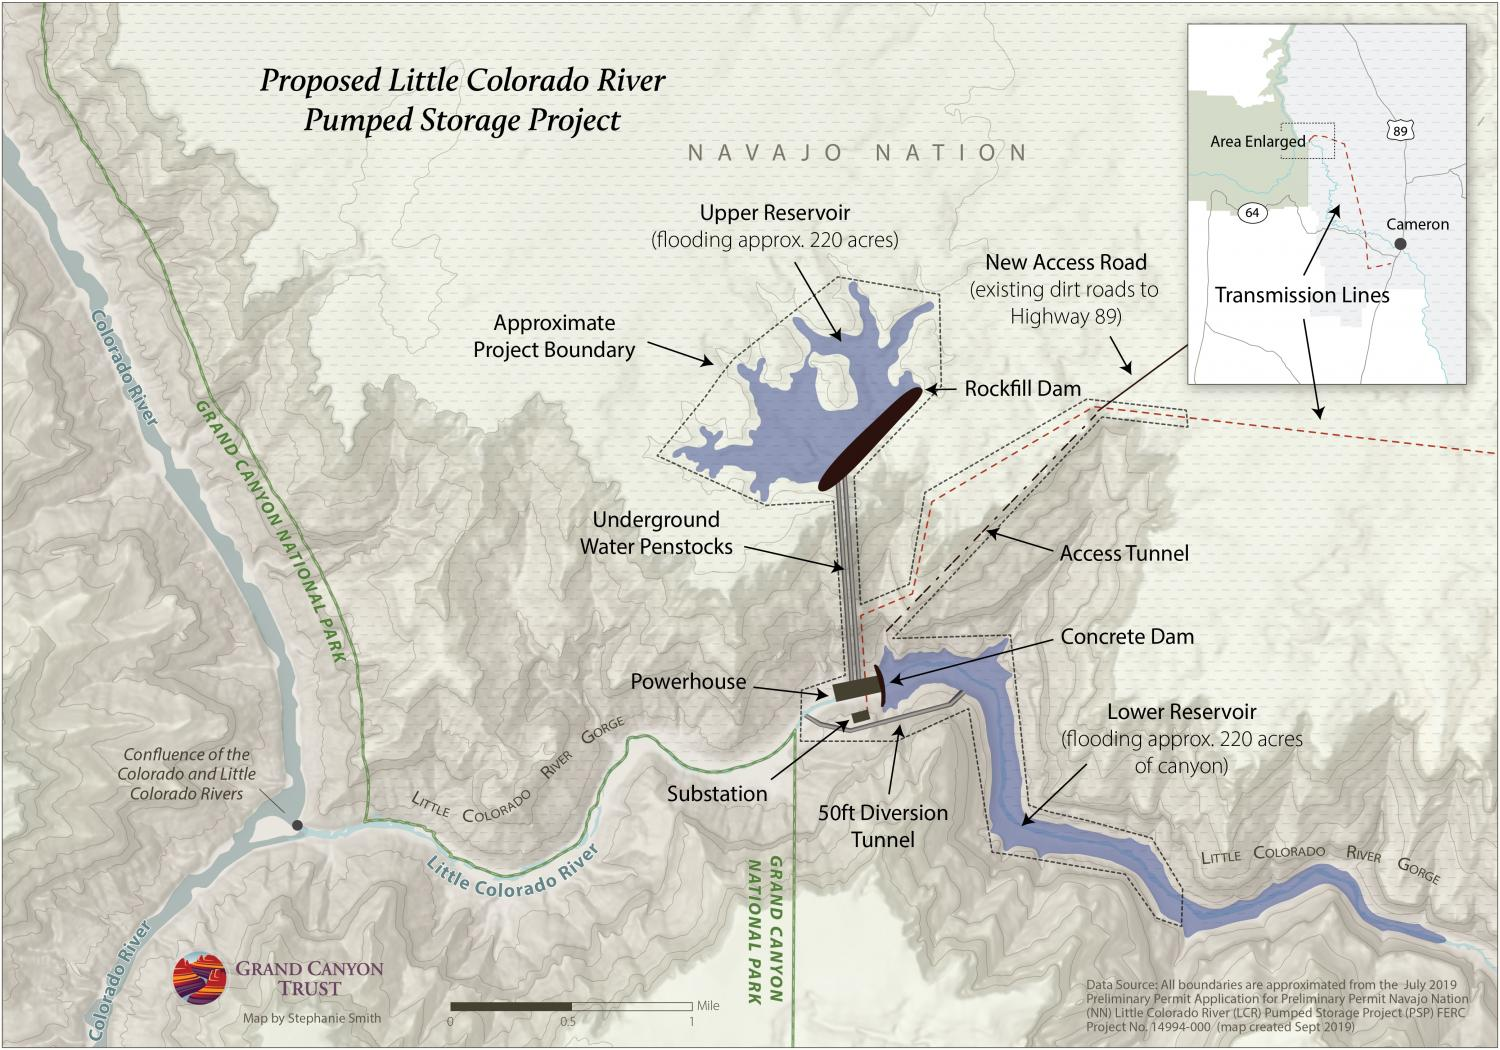 Map of Proposal to Dam the Little Colorado River (Project 2 ... Map Colorado on co map, connecticut map, illinois map, nevada map, georgia map, hawaii map, new york map, midwest map, oregon map, north carolina map, pikes peak map, arkansas map, utah map, california map, oklahoma map, wyoming map, montana map, arizona map, iowa map, delaware map, nebraska map, indiana map, idaho map, red feather lakes map, michigan map, florida map, kansas map, alabama map, louisiana map, texas map, alaska map,